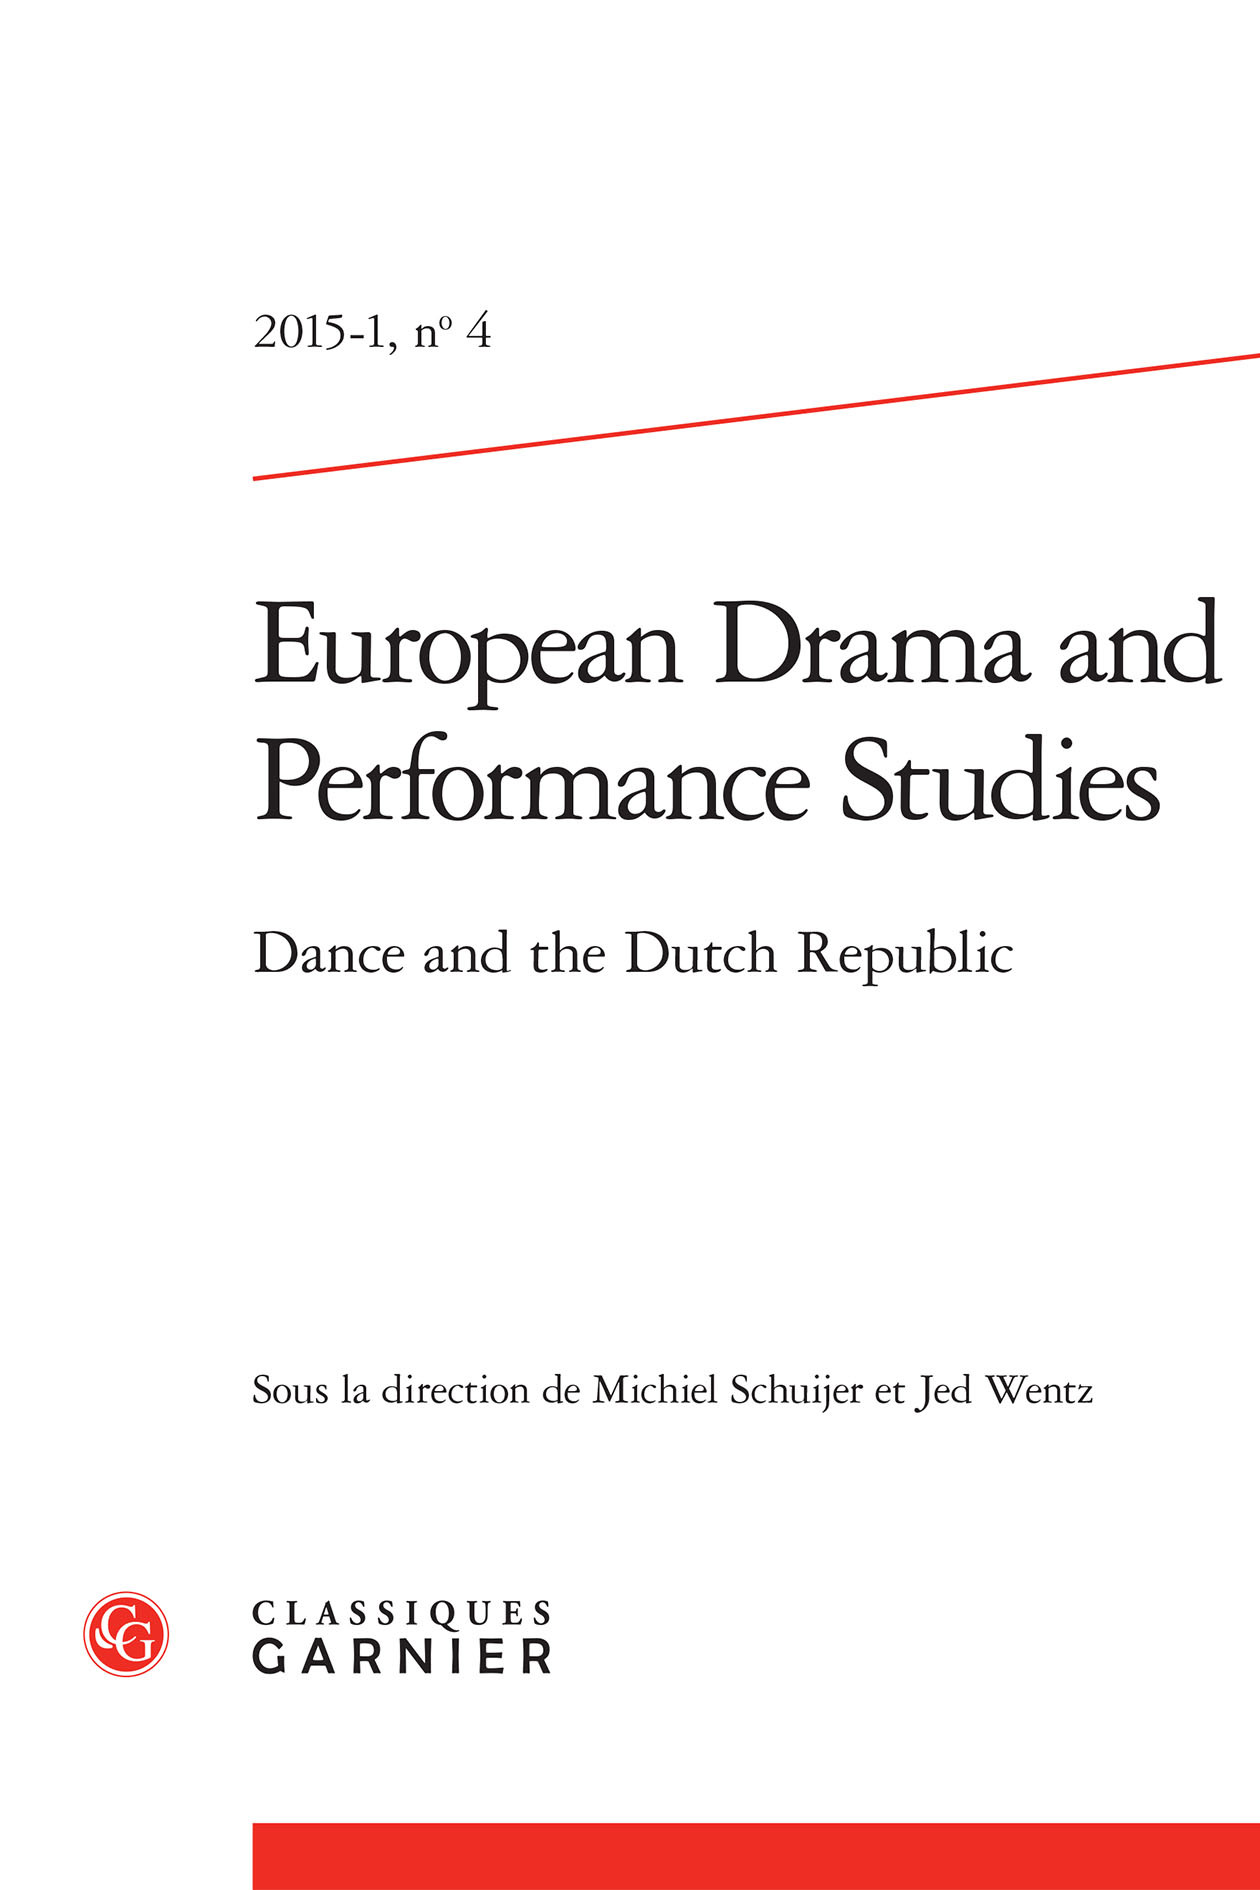 EUROPEAN DRAMA AND PERFORMANCE STUDIES 2015, N  4 - DANCE AND THE DUTCH REPUBLIC